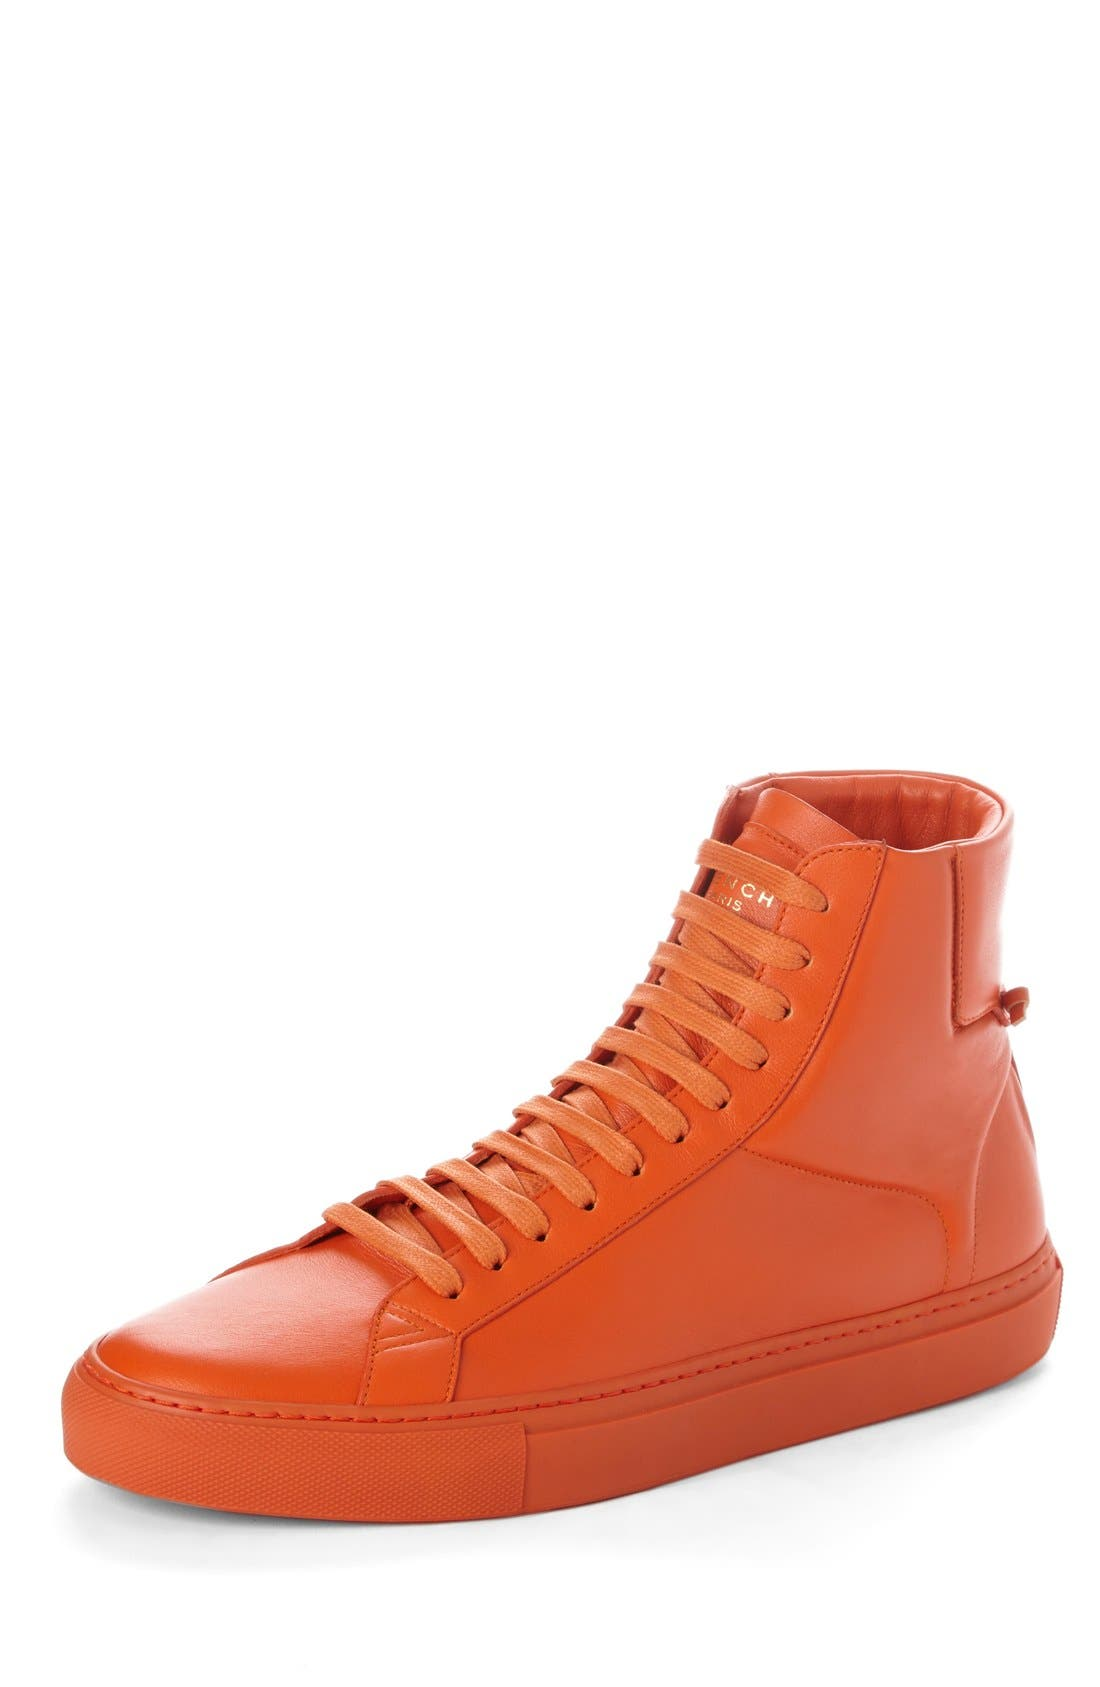 GIVENCHY 'Urban Knots' High Top Sneaker